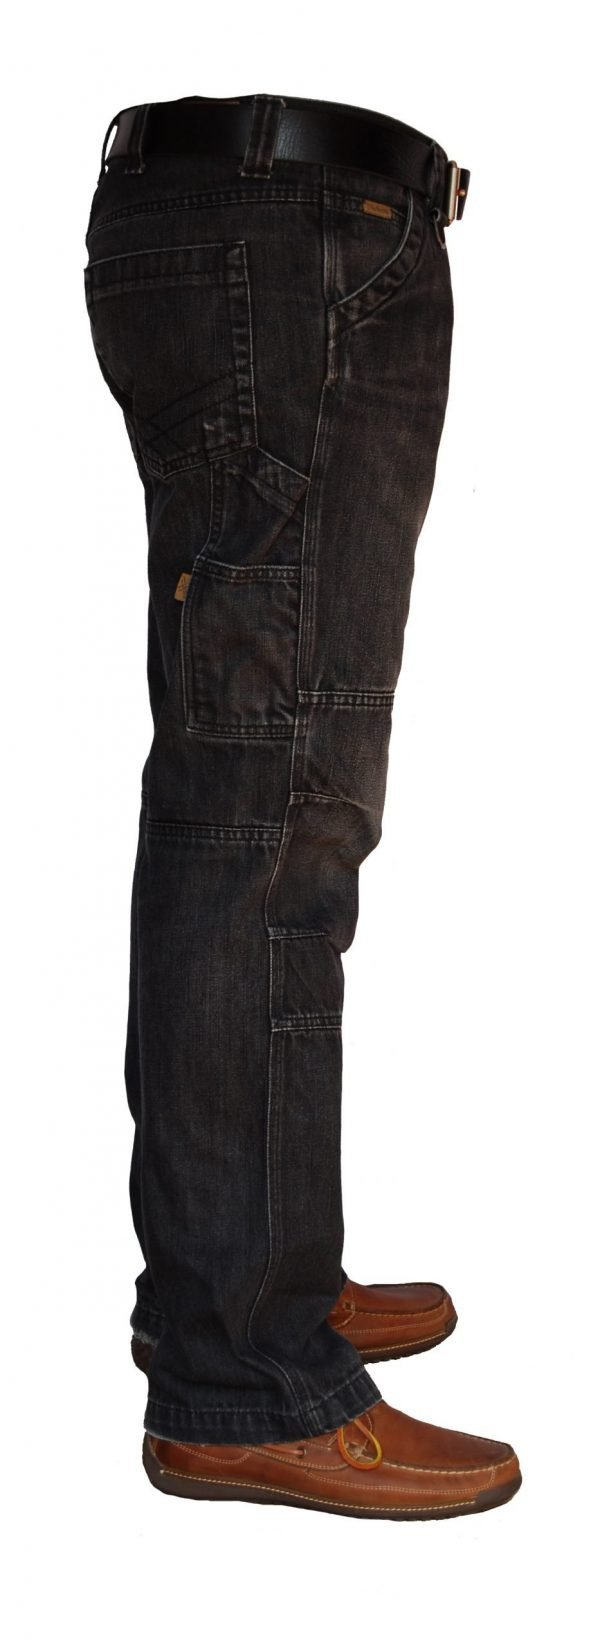 Black Denim Worker Jeans